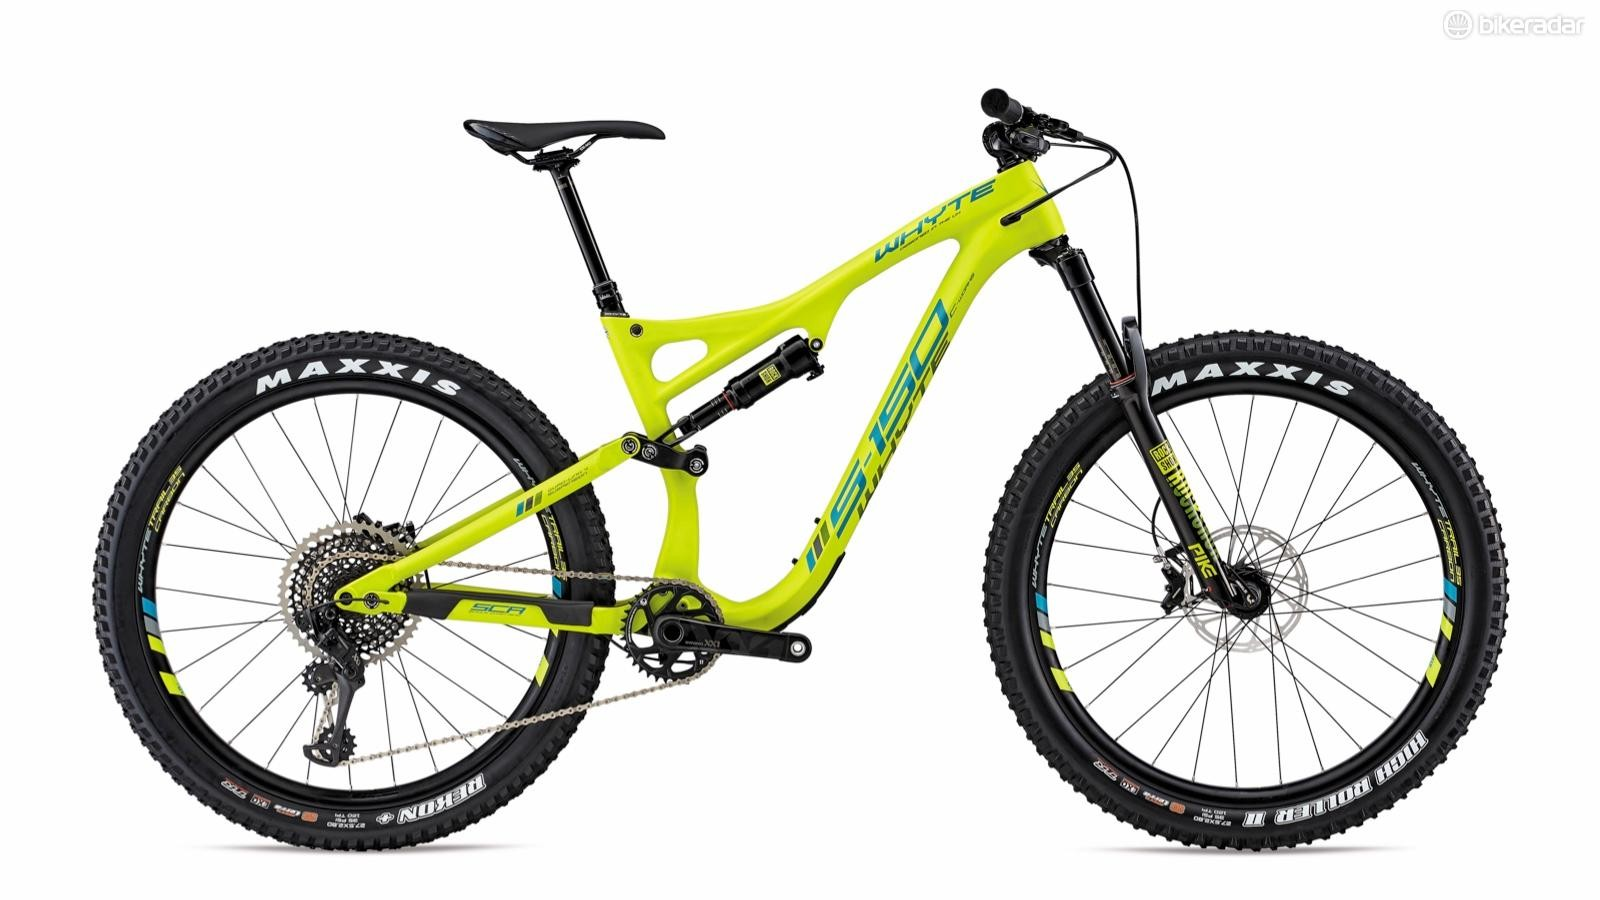 """There's plenty of room in the Boost frame and fork for 27.5 by 2.8"""" rubber. There's no fancy geometry adjust chips, so this will drop the BB a little. I don't think that's necessarily a bad thing, though"""